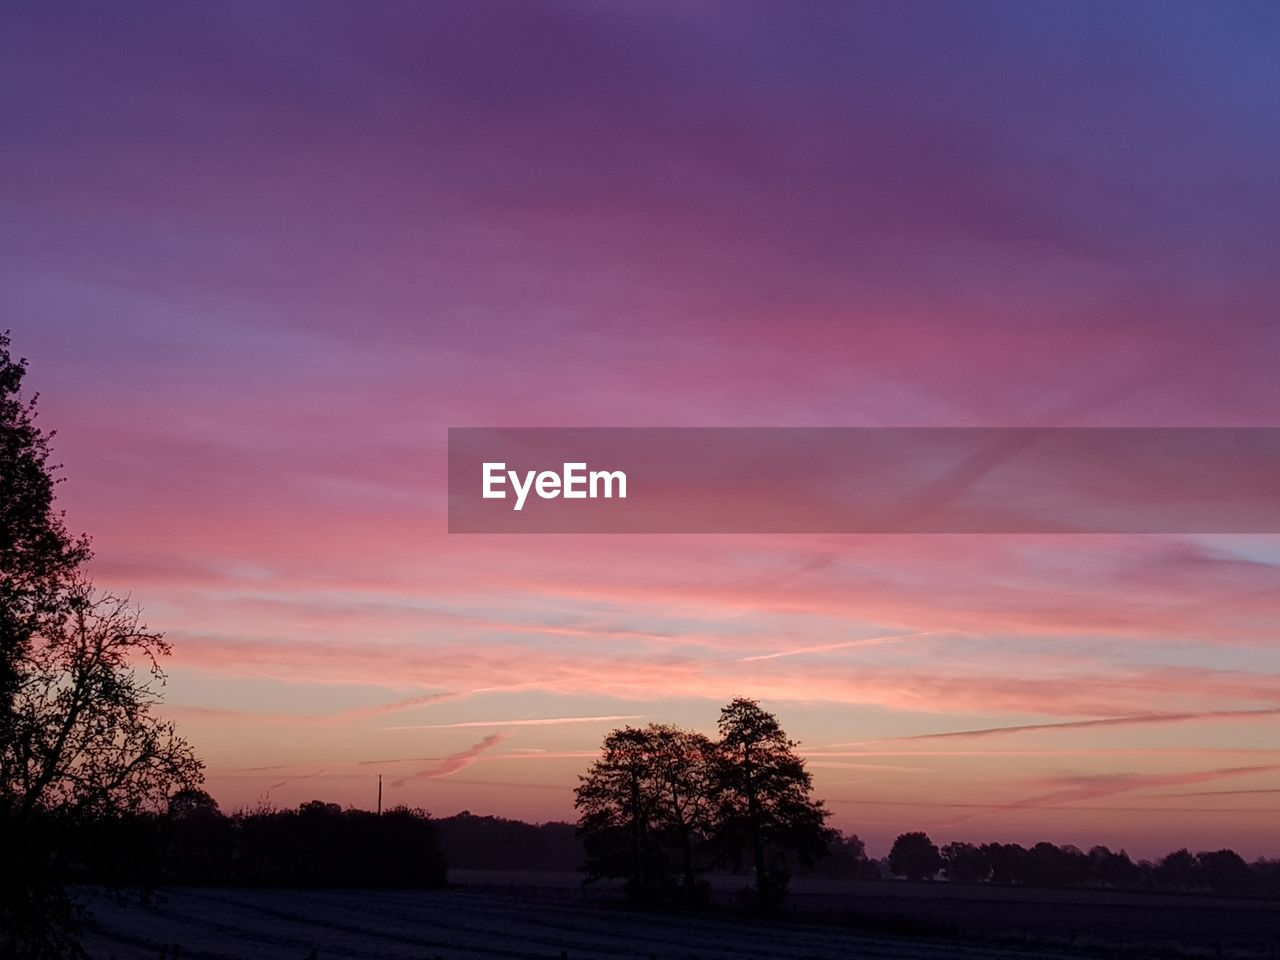 sunset, sky, tree, scenics - nature, beauty in nature, plant, tranquil scene, tranquility, cloud - sky, silhouette, nature, orange color, no people, environment, non-urban scene, landscape, idyllic, outdoors, pink color, field, purple, romantic sky